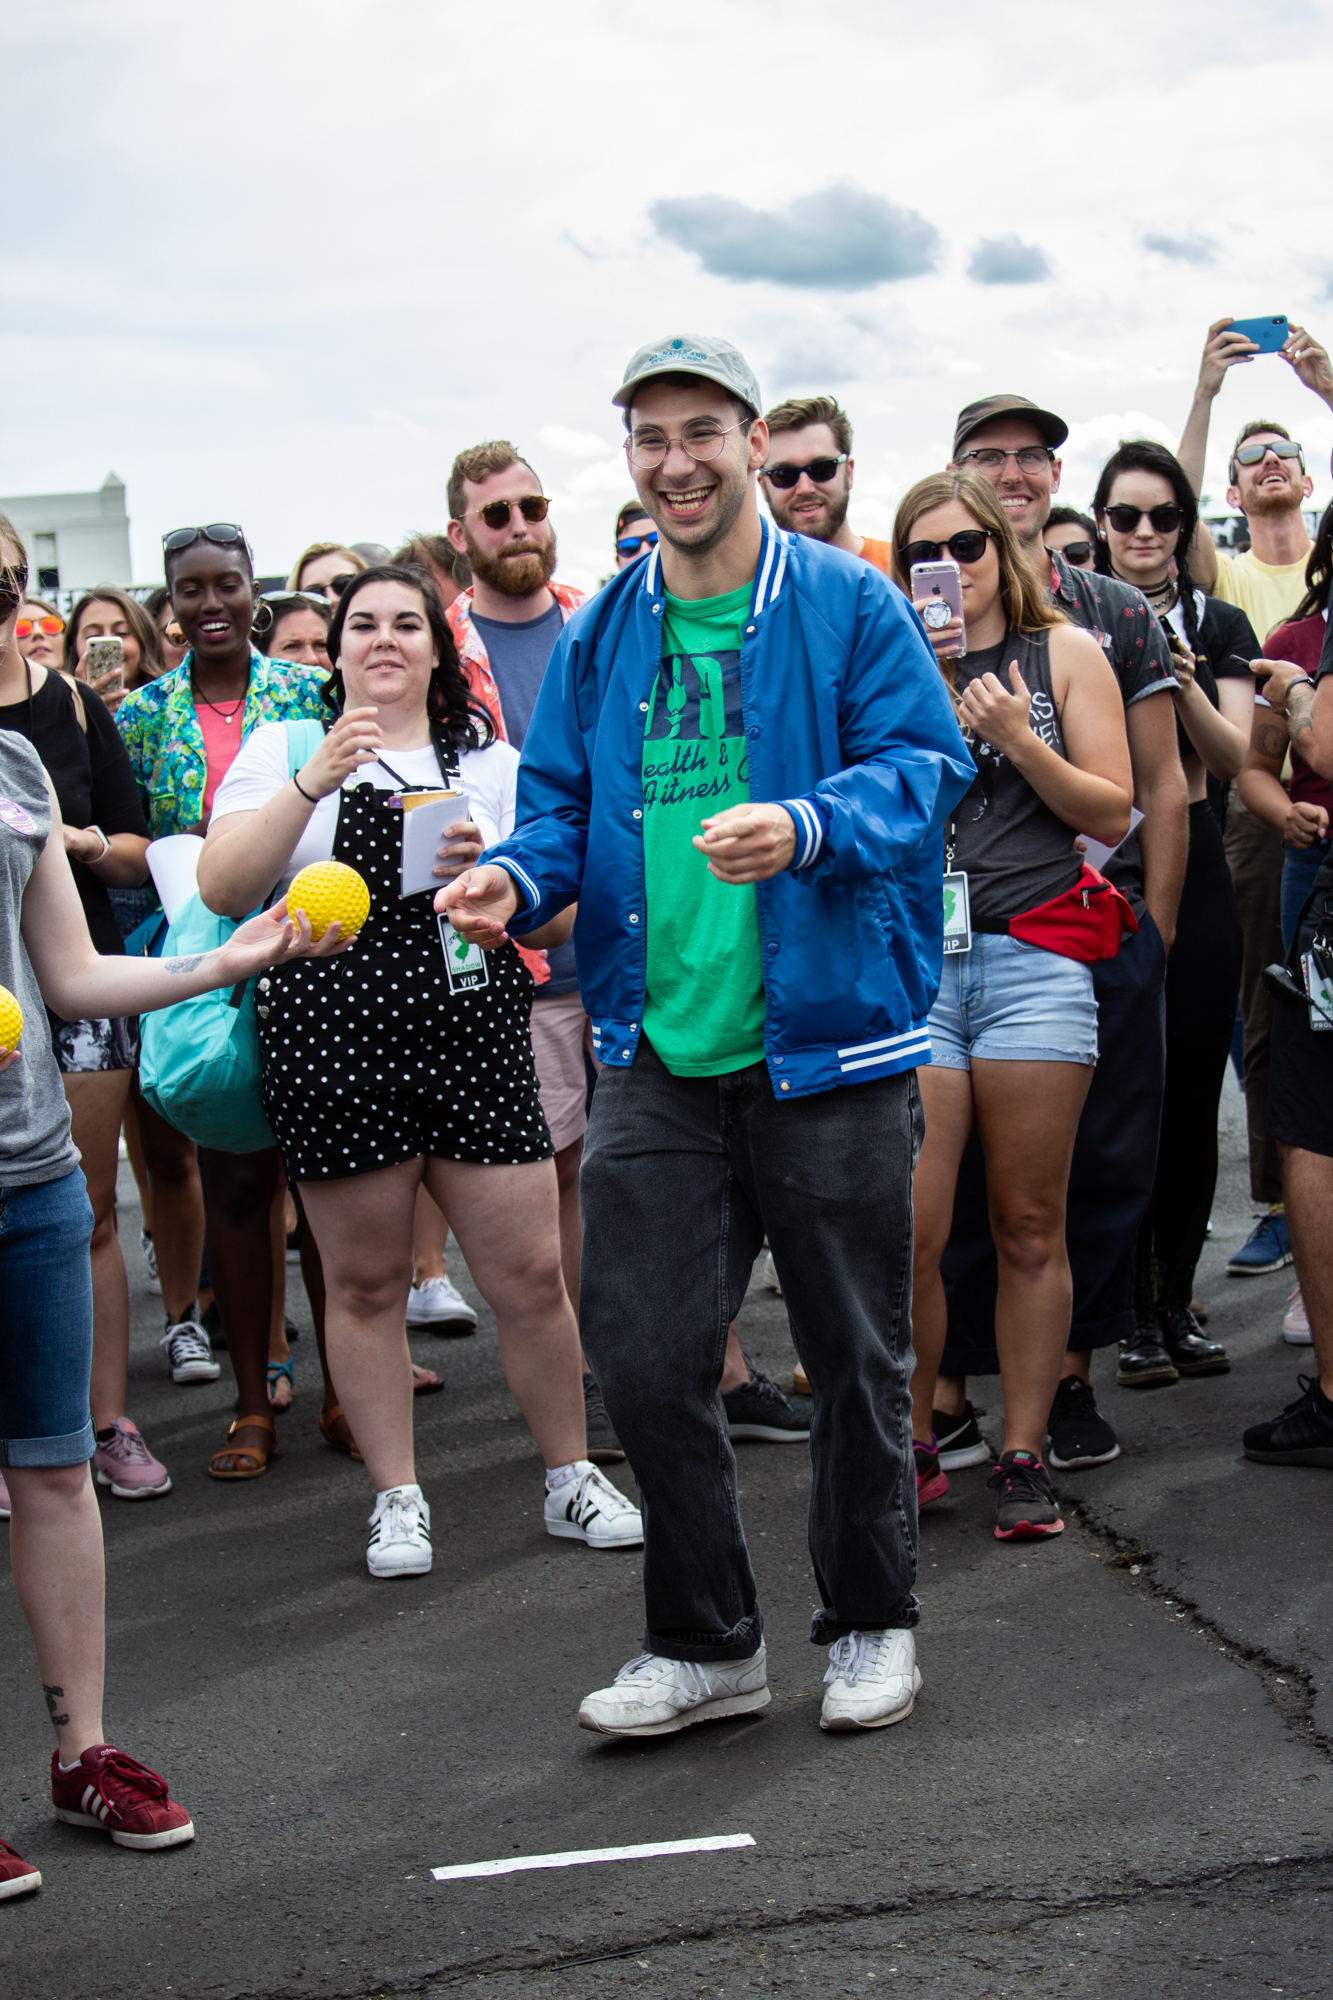 Makayla Bergasse (left) and Jack Antonoff (right) hang out in the crowd at Shadow of the City festival in Asbury Park, NJ on August 25, 2018.